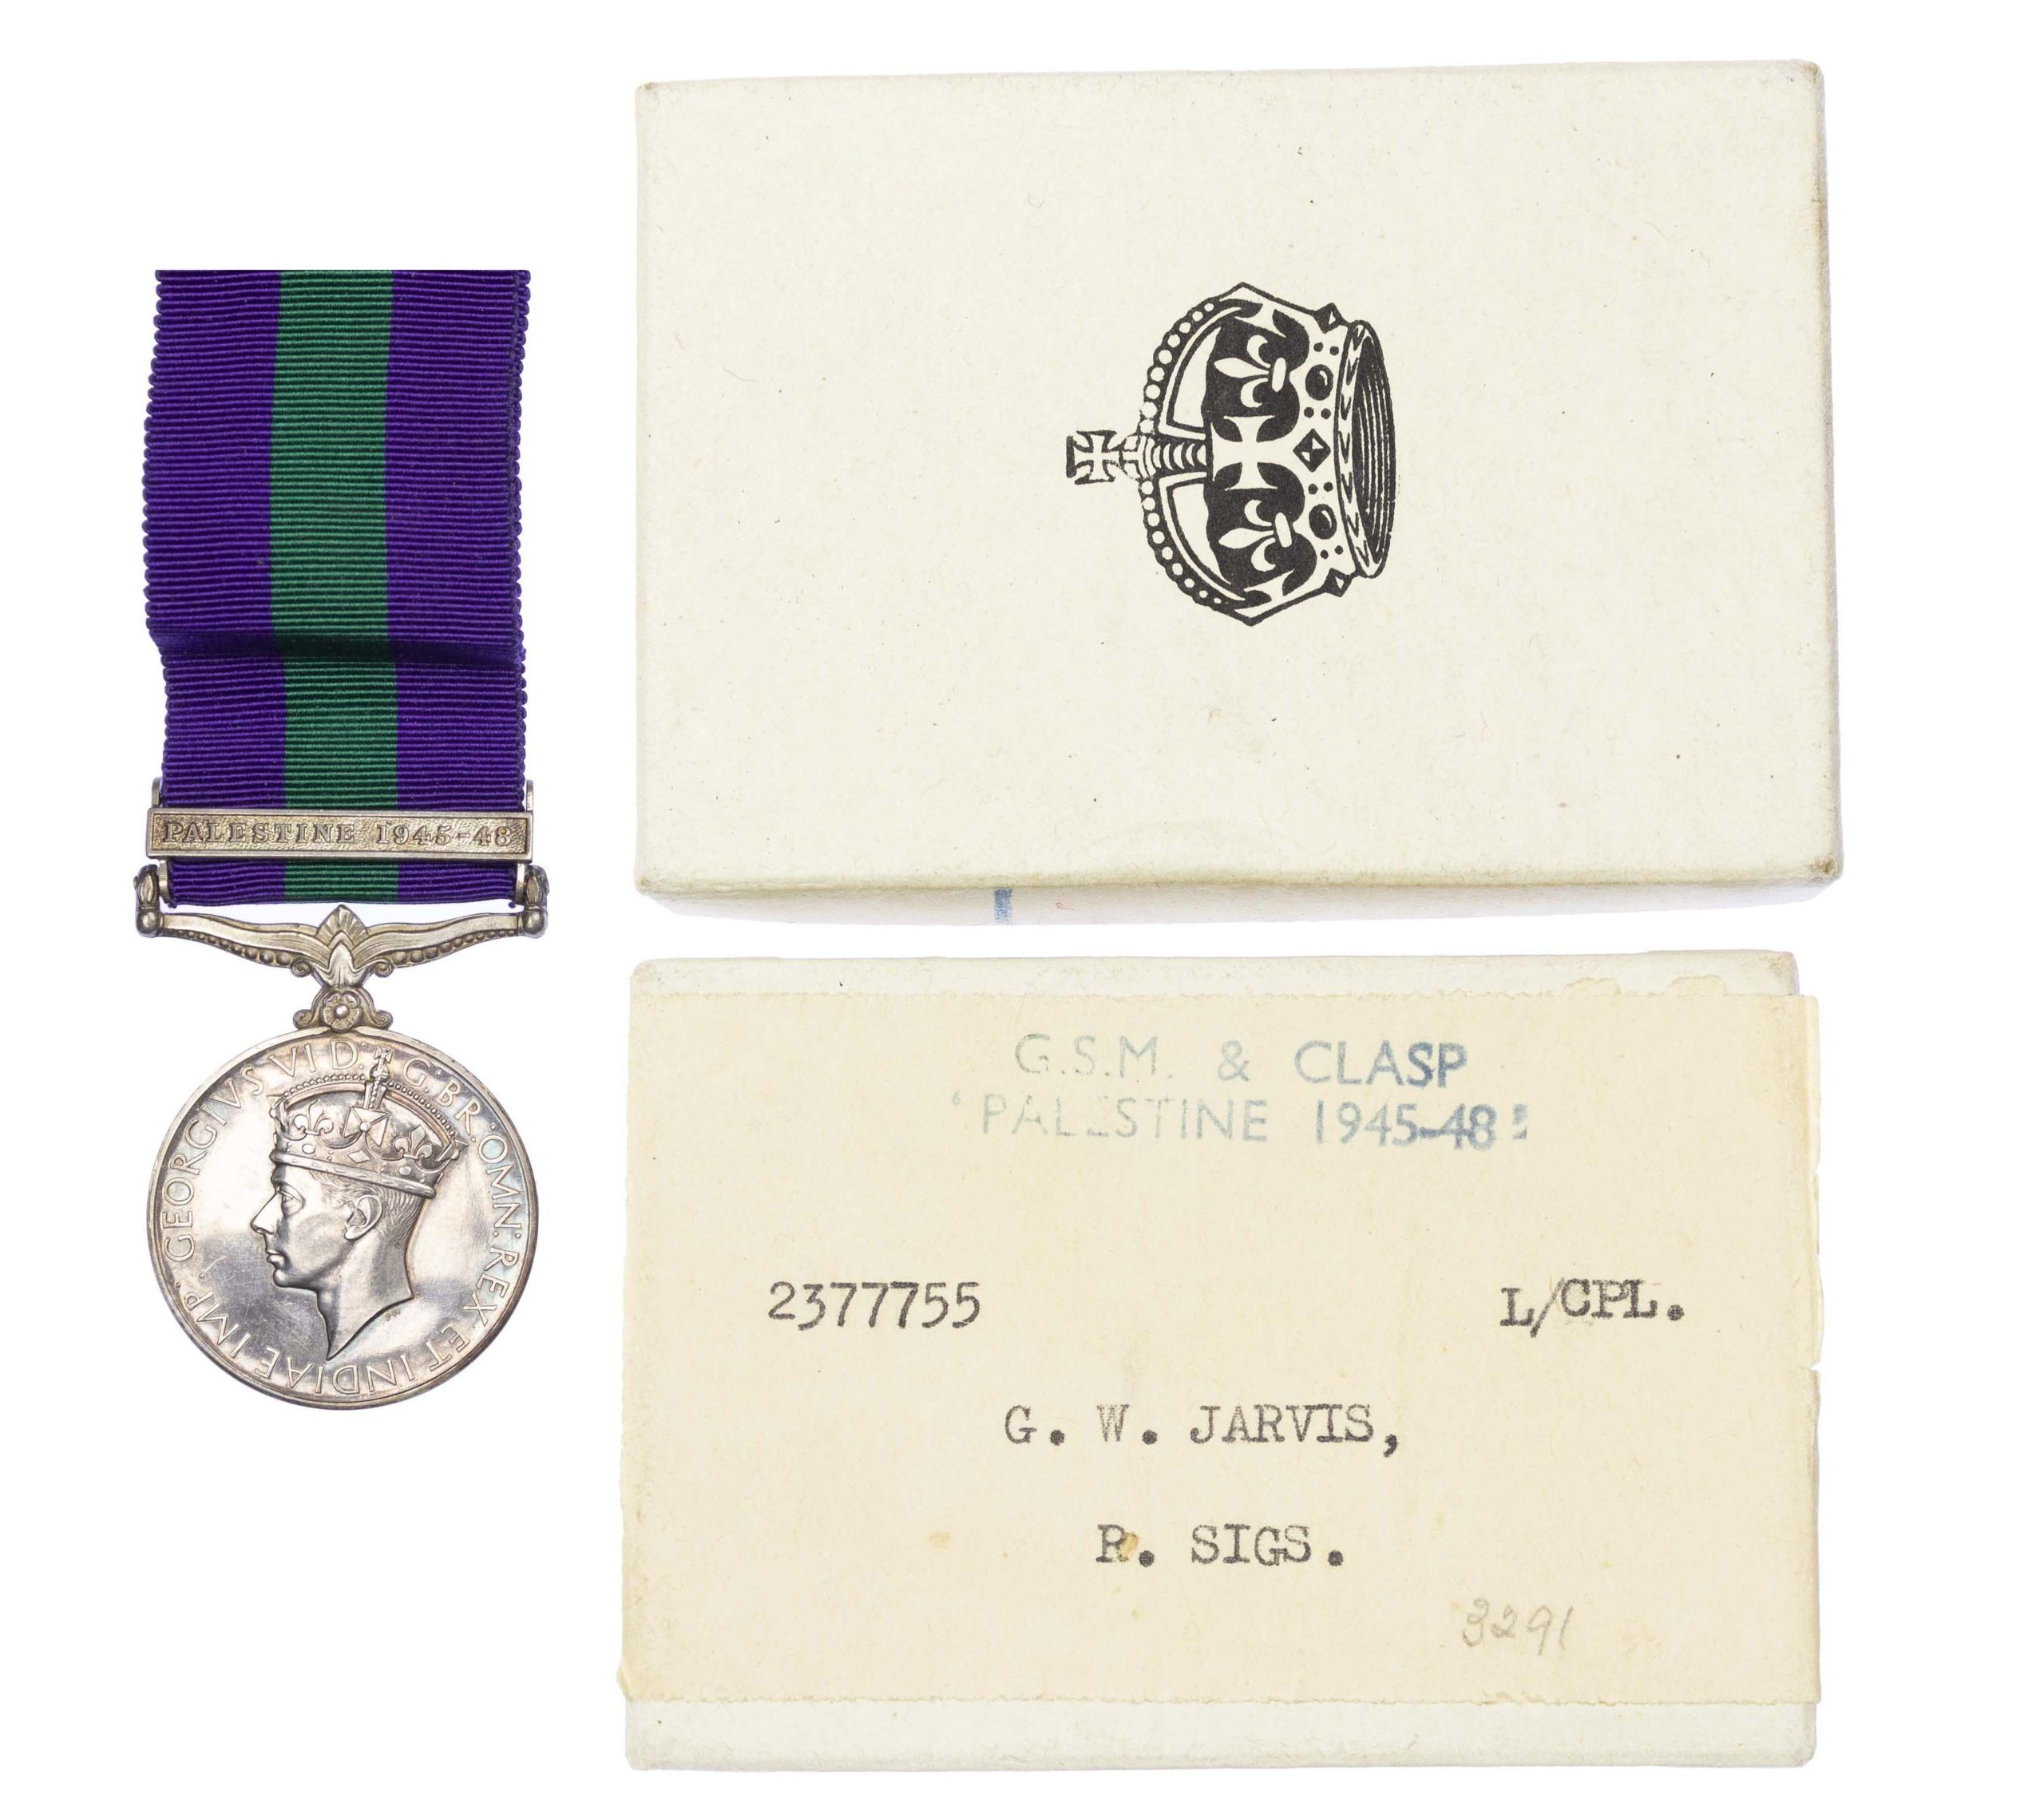 General Service Medal 1918-62, GVIR, one clasp Palestine1945-48 to Lance Corporal G.W. Jarvis